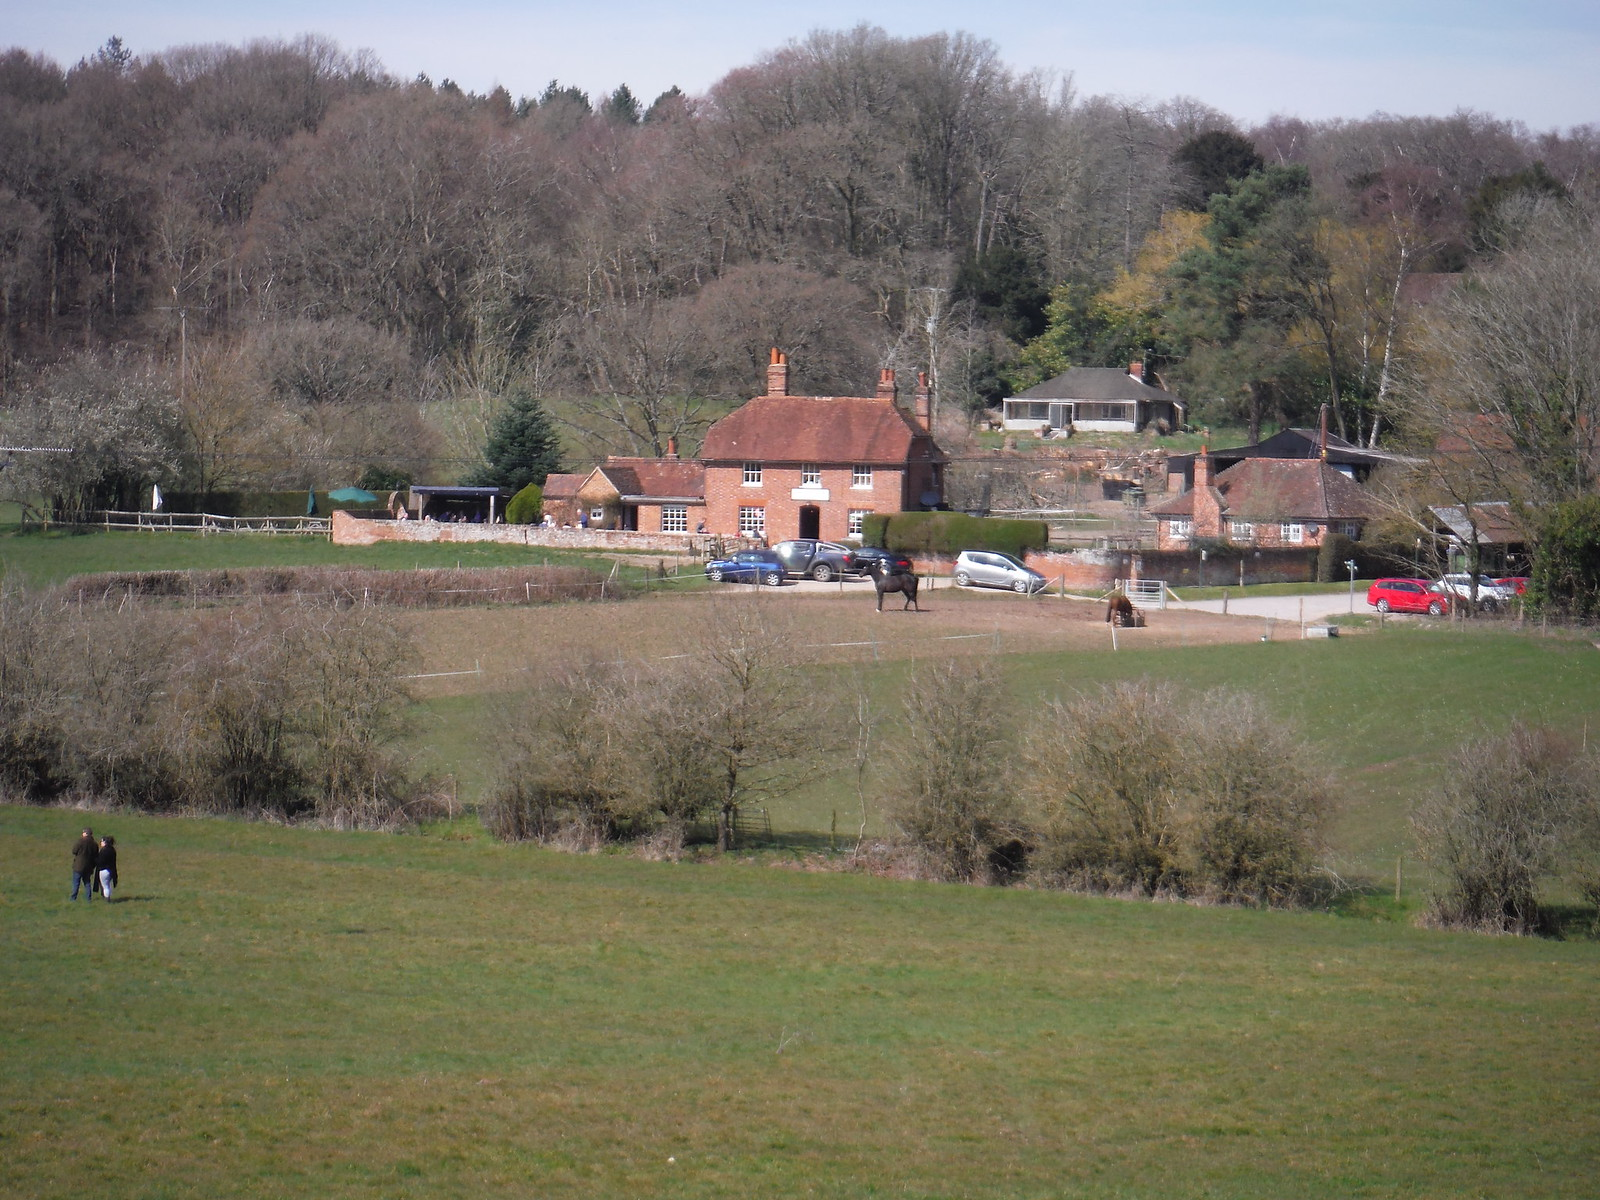 The Pot Kiln pub across a meadow SWC Walk 260 Aldermaston to Woolhampton [Midgham Station] (via Frilsham)